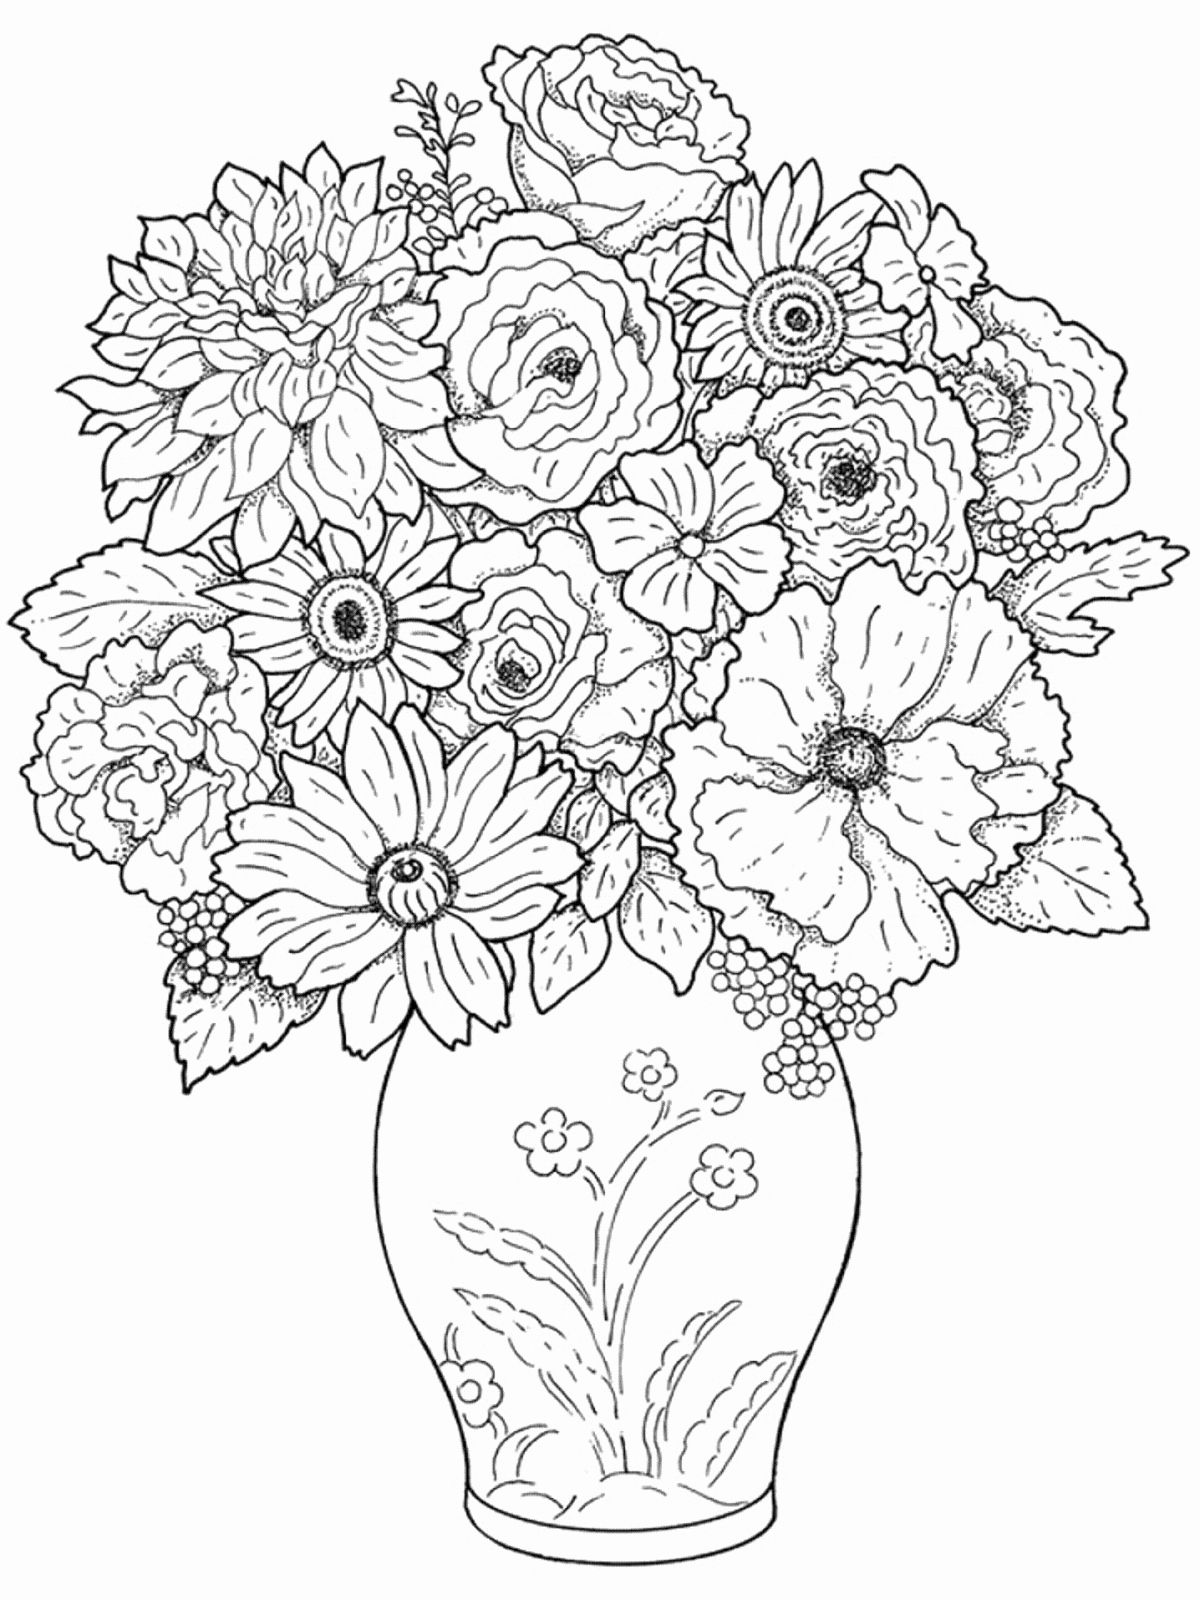 Free Flower Coloring Sheets In 2020 With Images Detailed